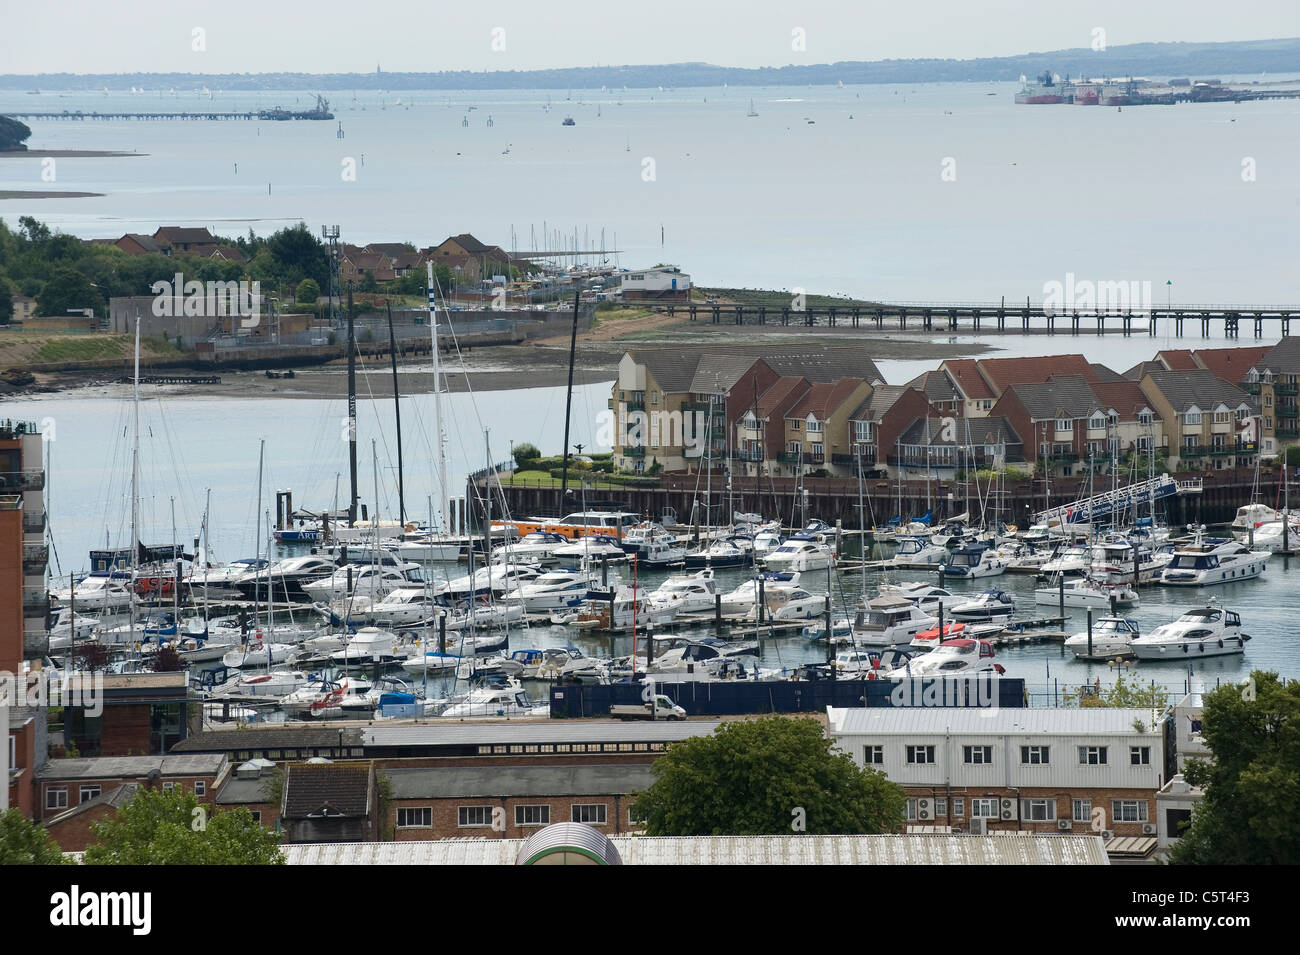 Aerial view of Ocean Village Marina, Southampton, England, showing Southampton Water and the Solent - Stock Image